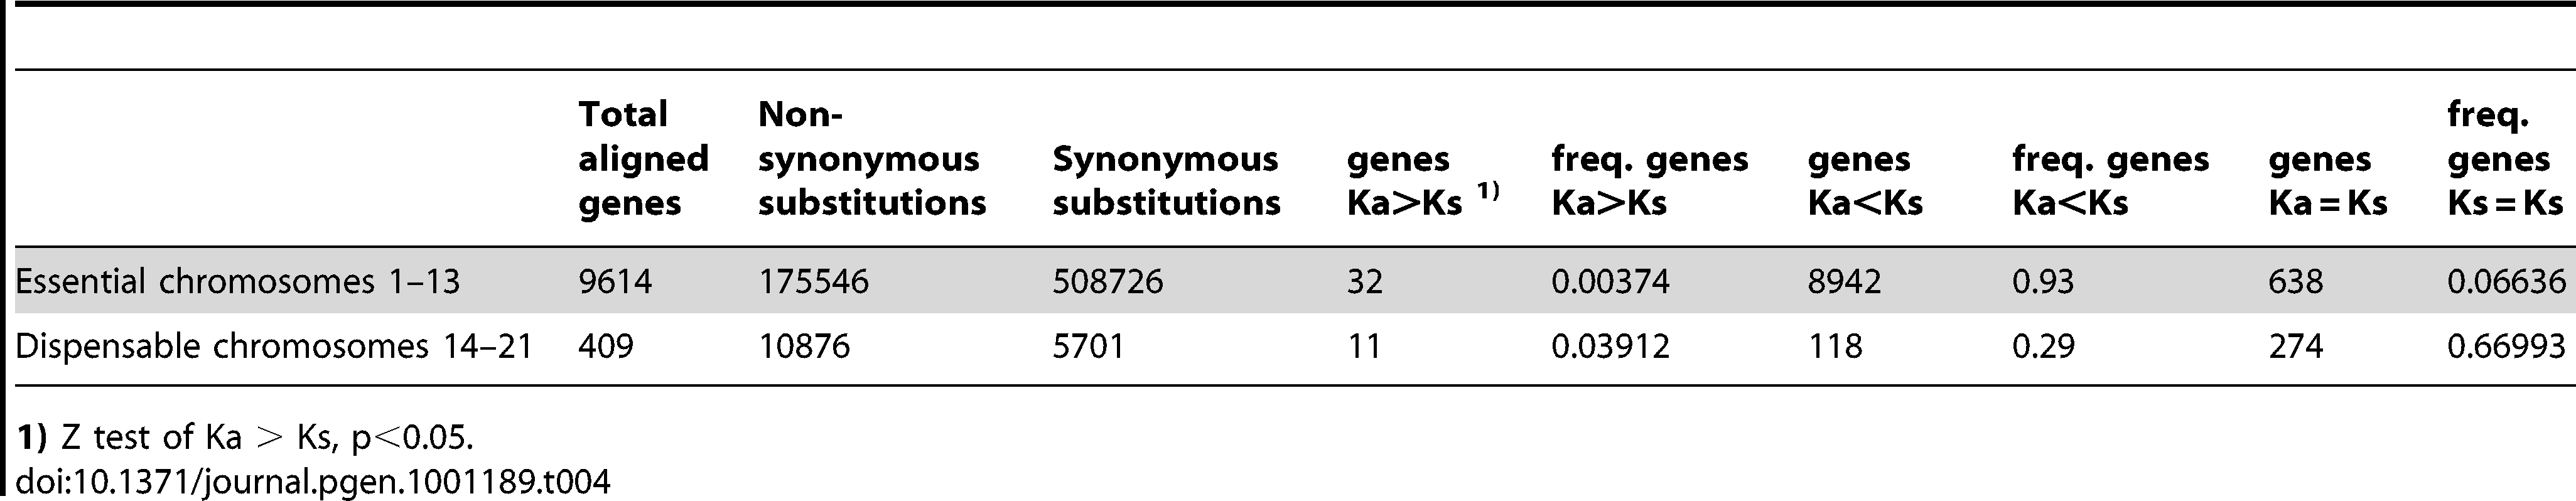 Ka/Ks ratios of aligned genes on essential and dispensable chromosomes.